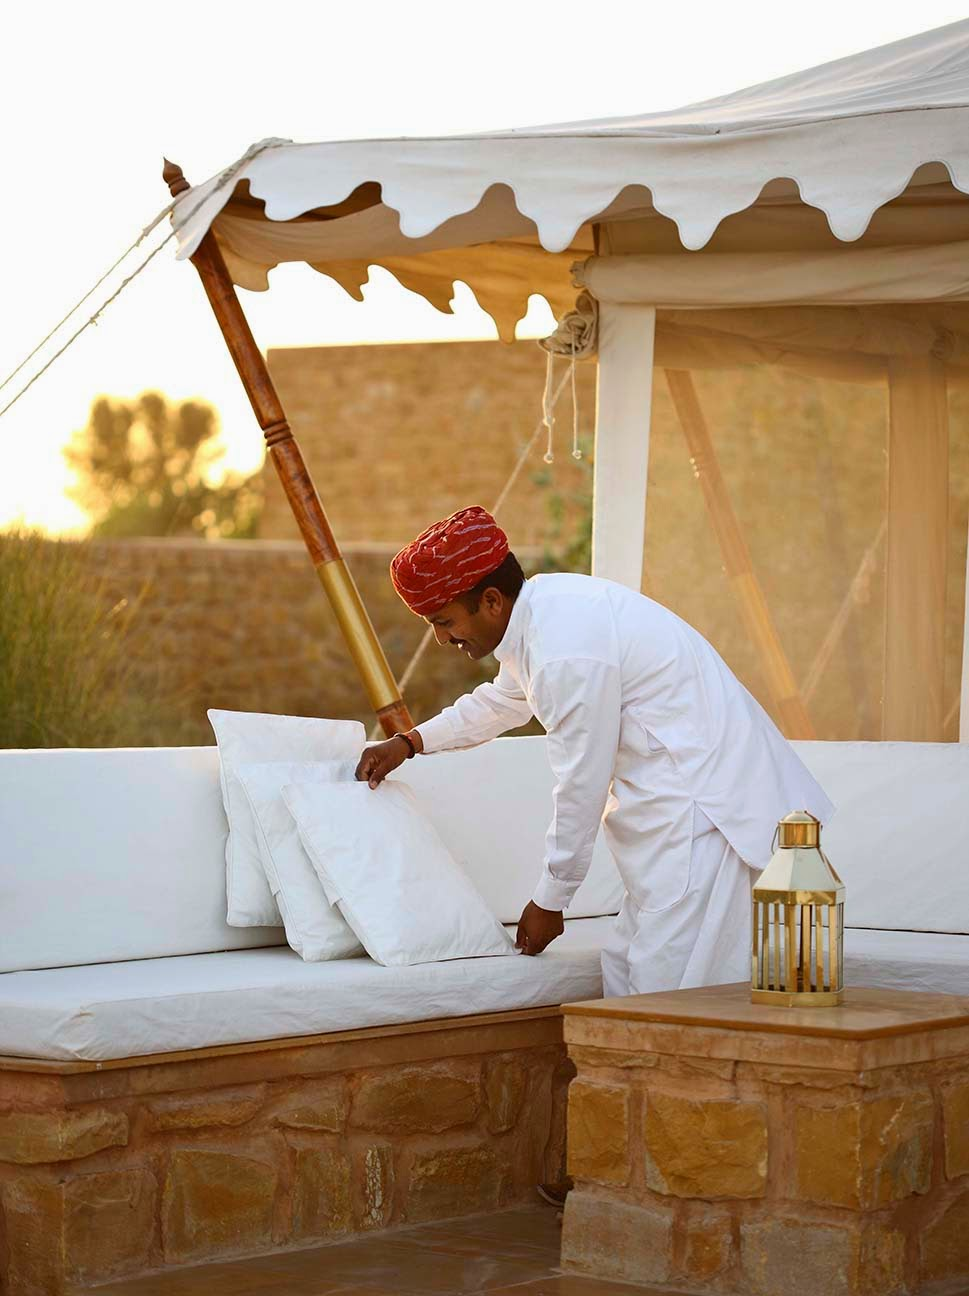 Camp Staff Wears Crisp White Linen Tunics And Trousers With A Signature Red Turban All Characteristic Of Rajasthan